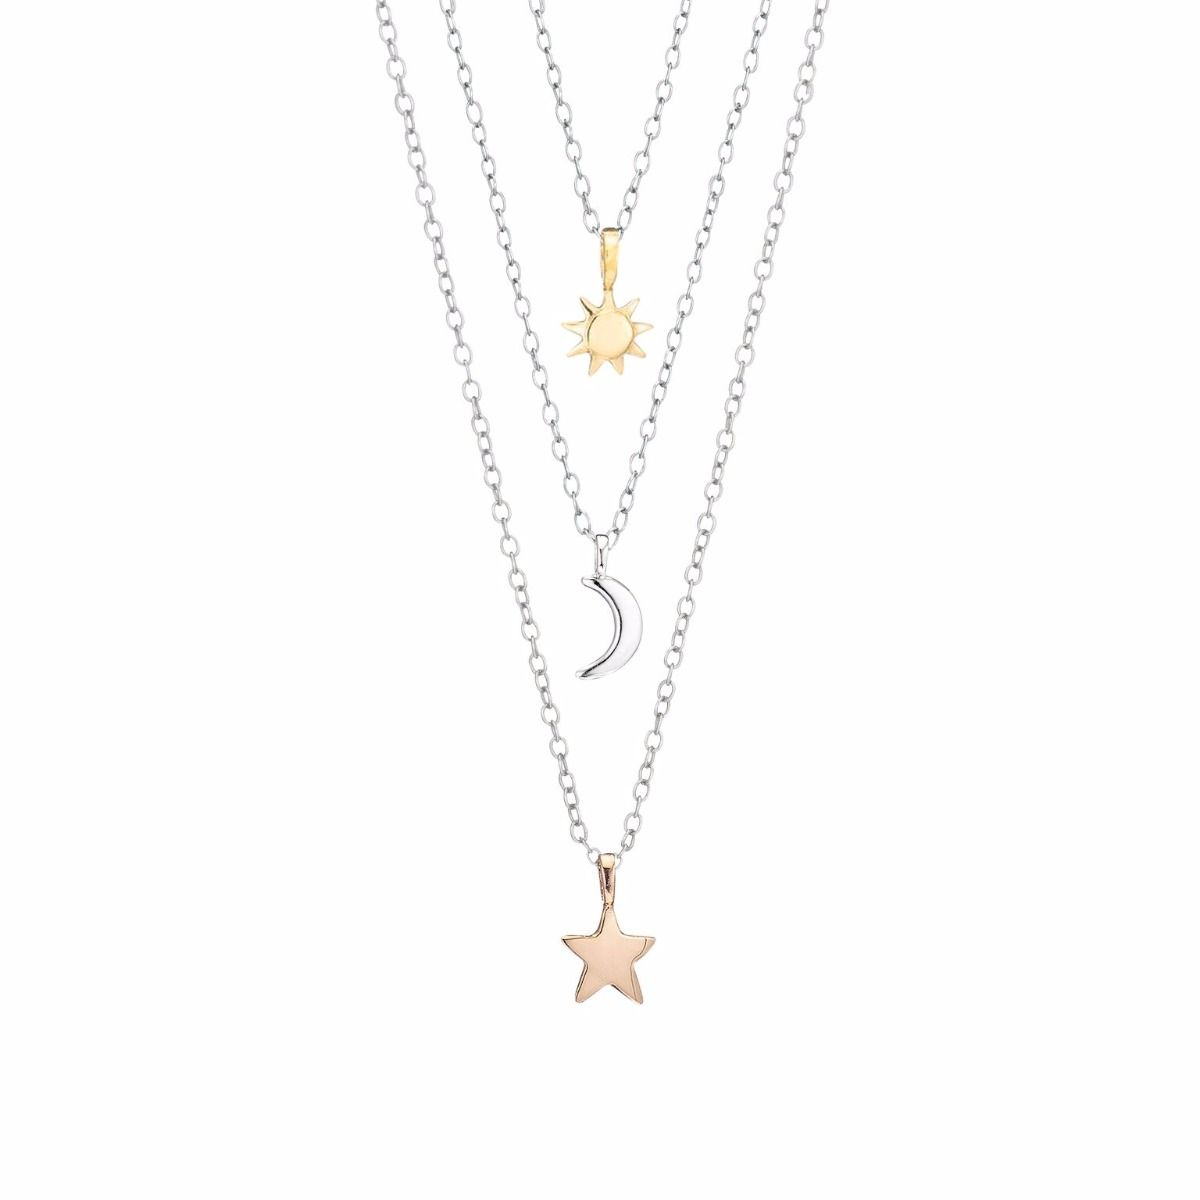 Grandma mama me sun moon and star charm necklace in